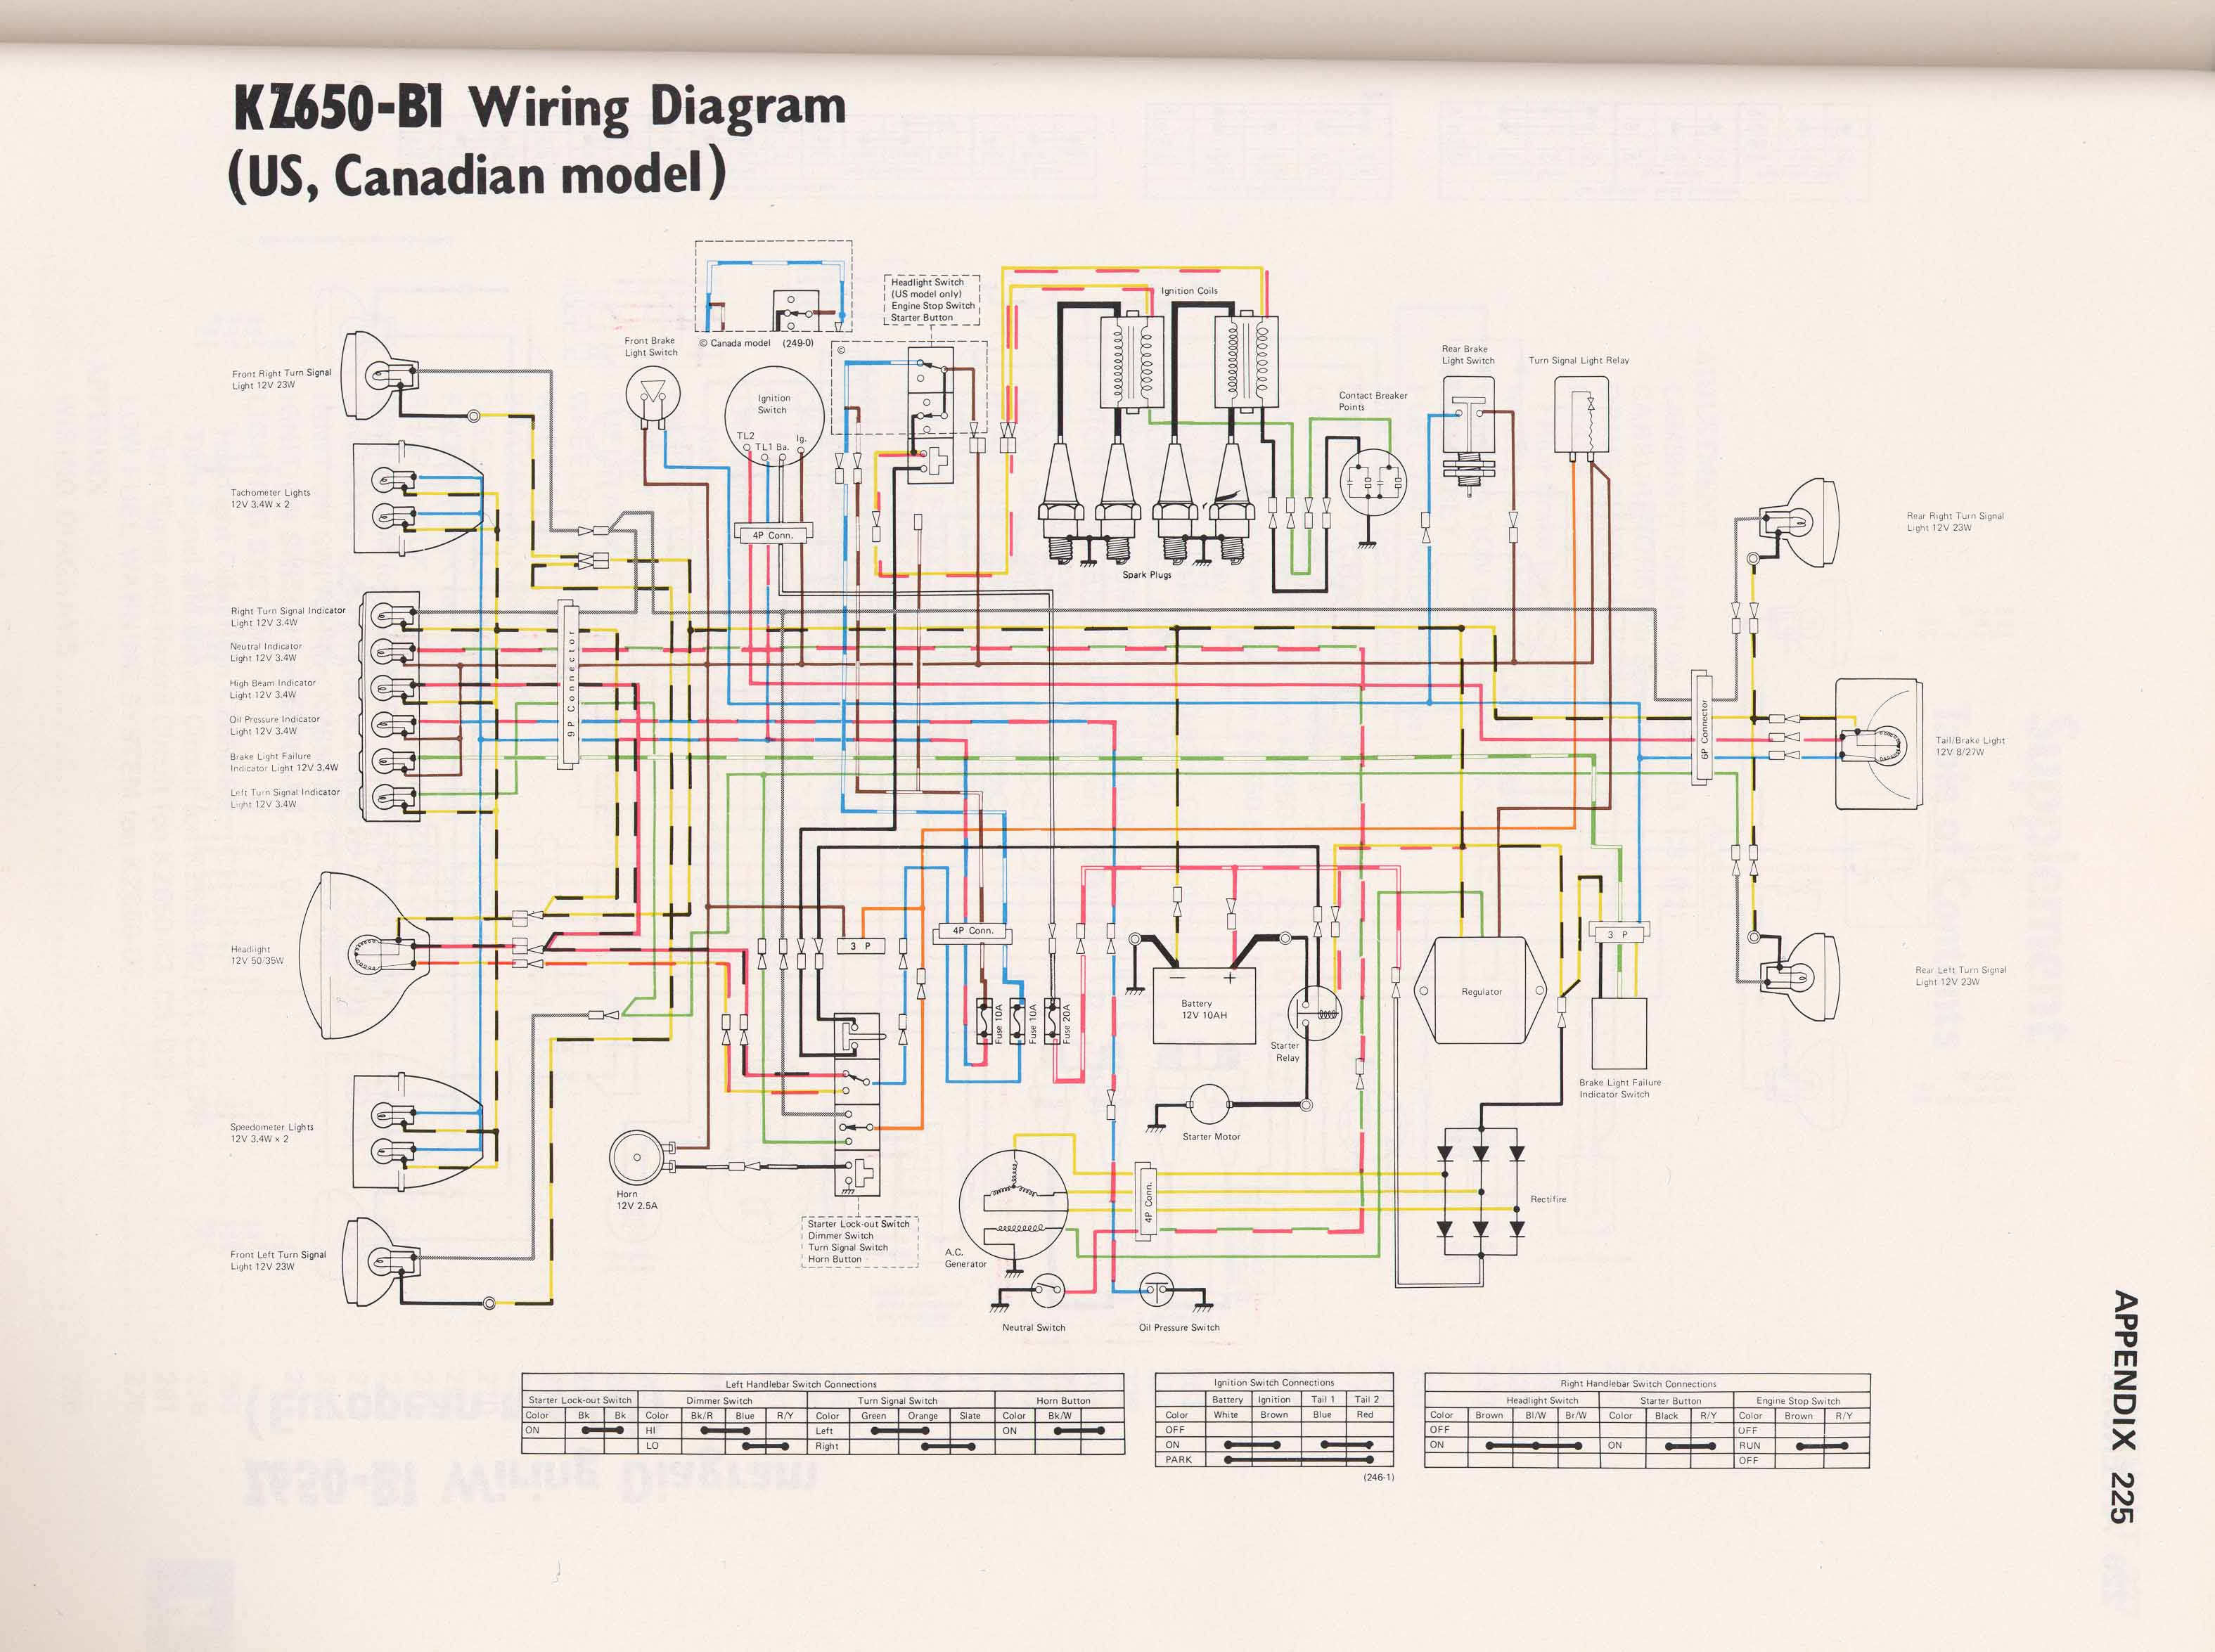 KZ650 B1 100 [ car ignition wiring diagram ] affordable nice 1968 RV 12V Wiring Diagram at bayanpartner.co